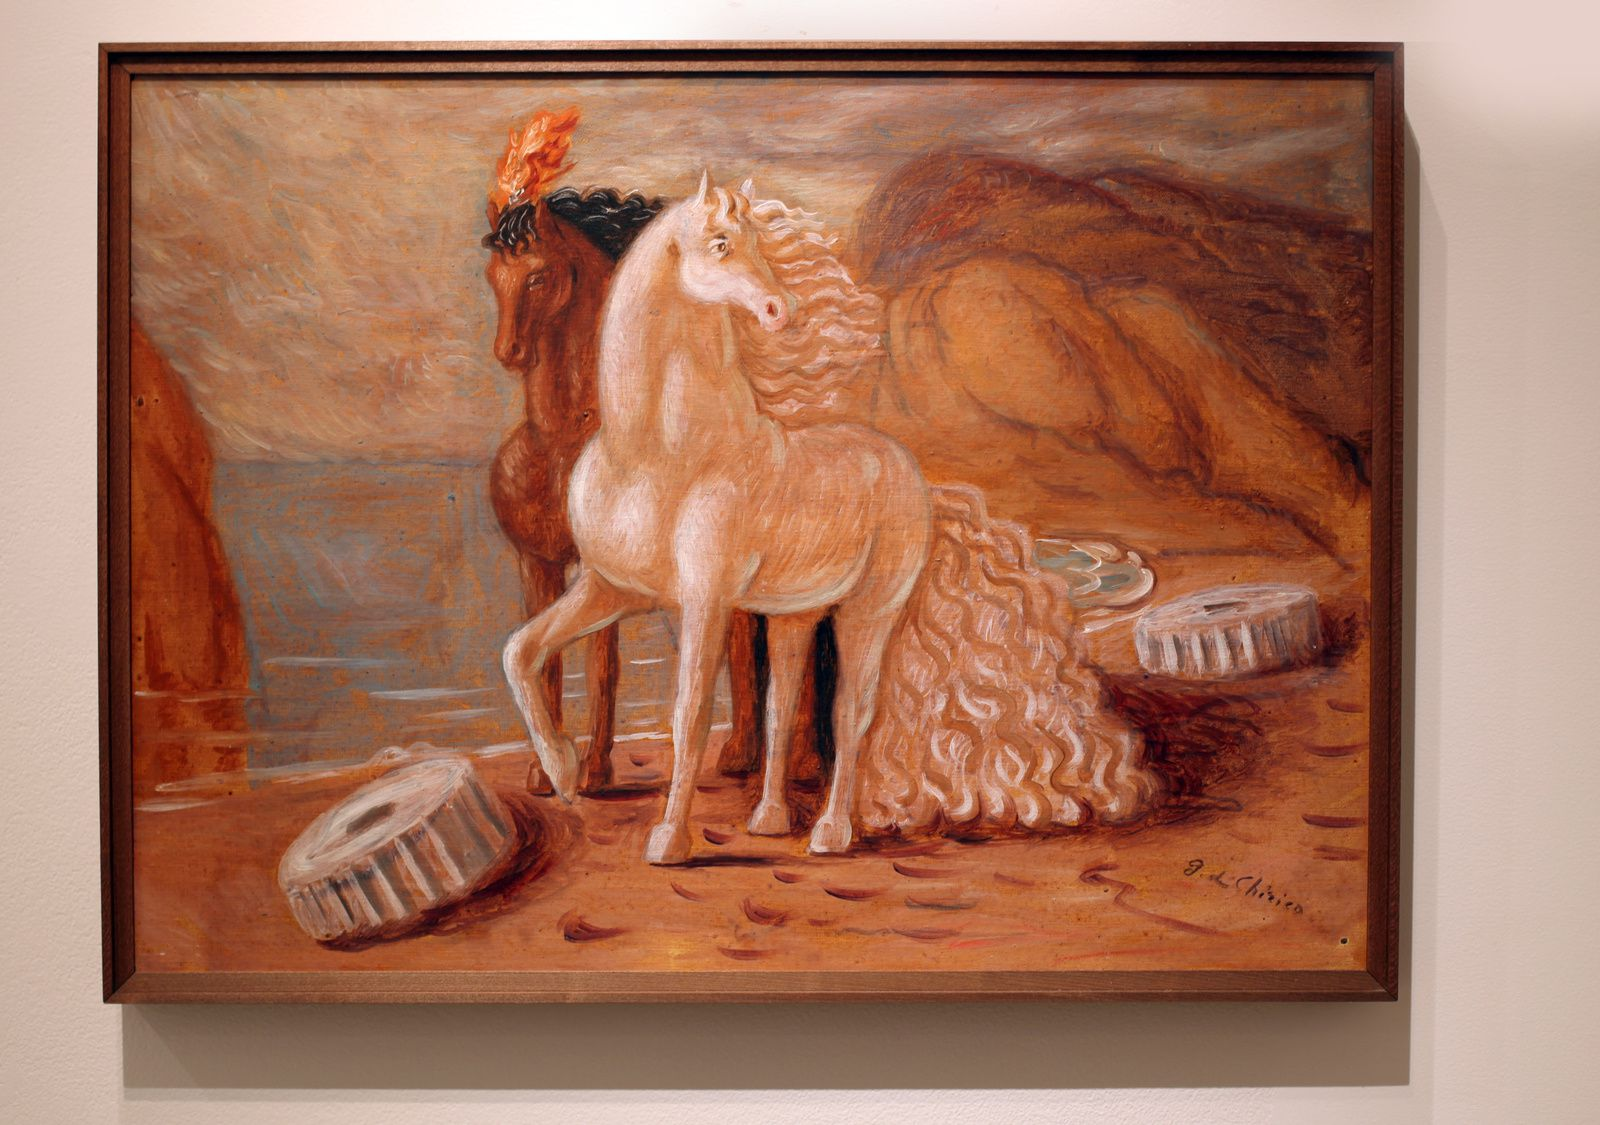 """Cavalli in riva al mare"", 1932 - 1933 de Giorgio DE CHIRICO - Courtesy Galerie Tornabuoni Art Paris © Photo Éric Simon"